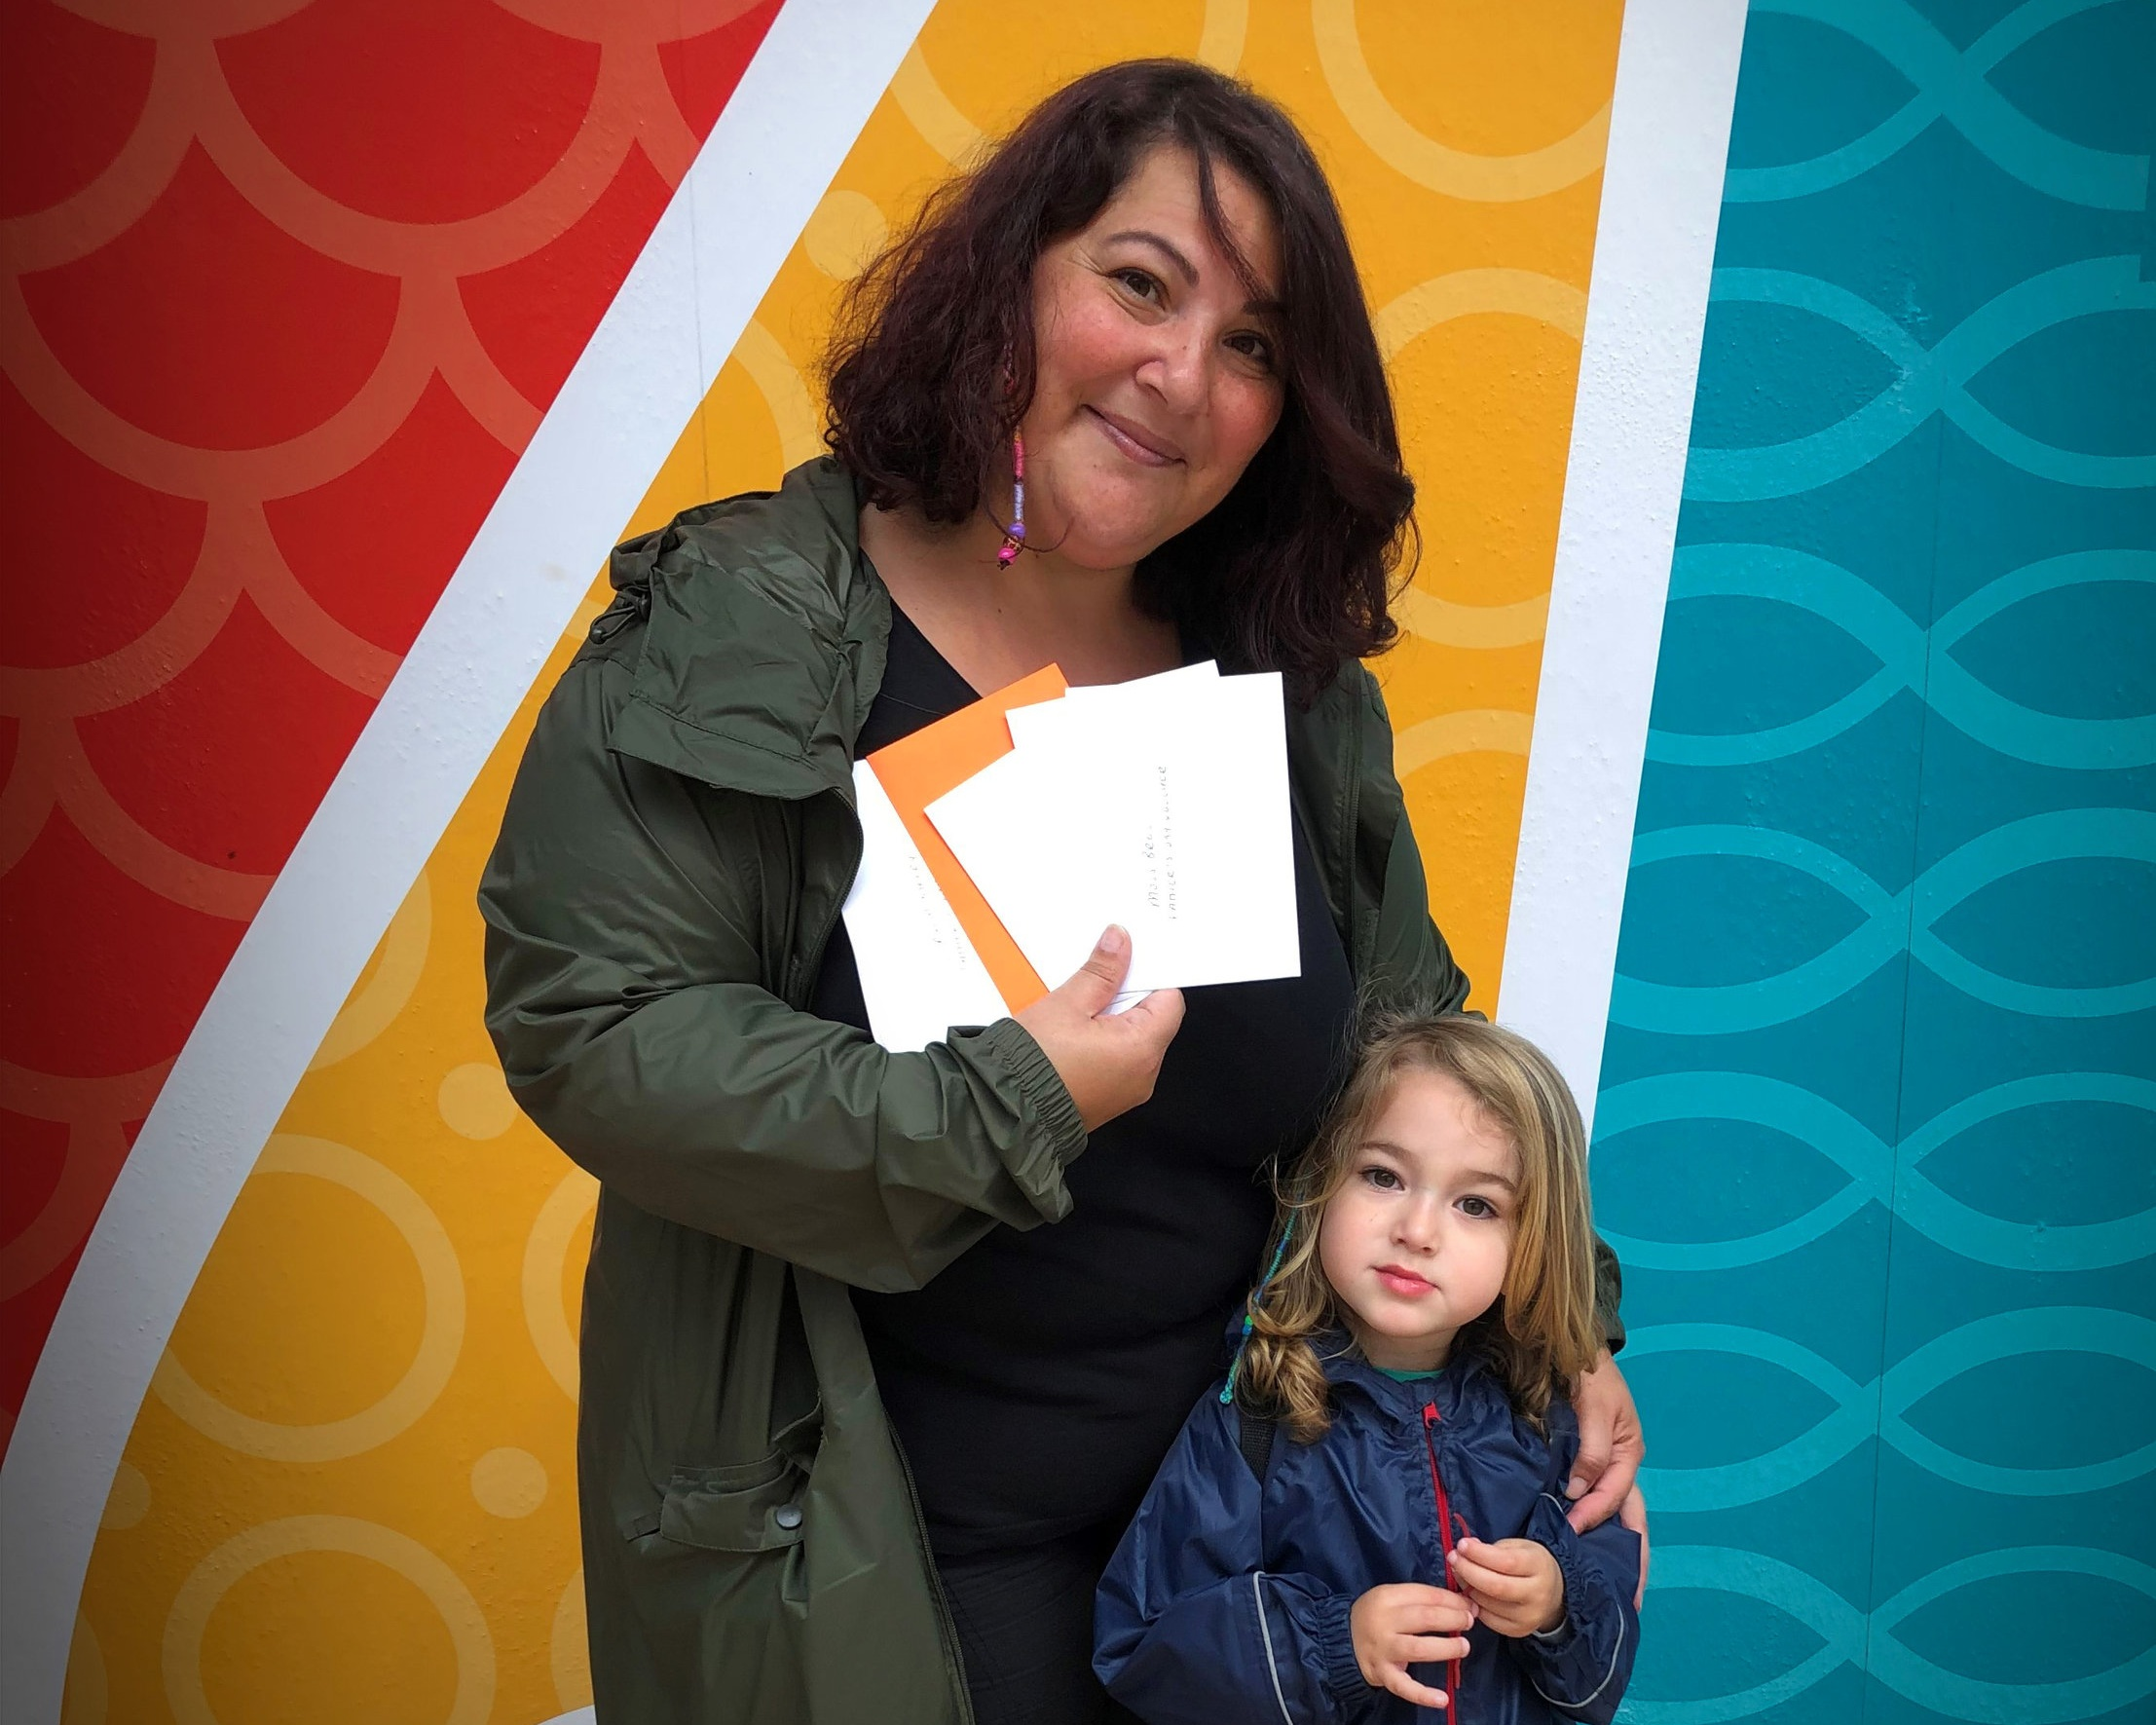 Winner of Liberty Wharf's Father's Day Competition -